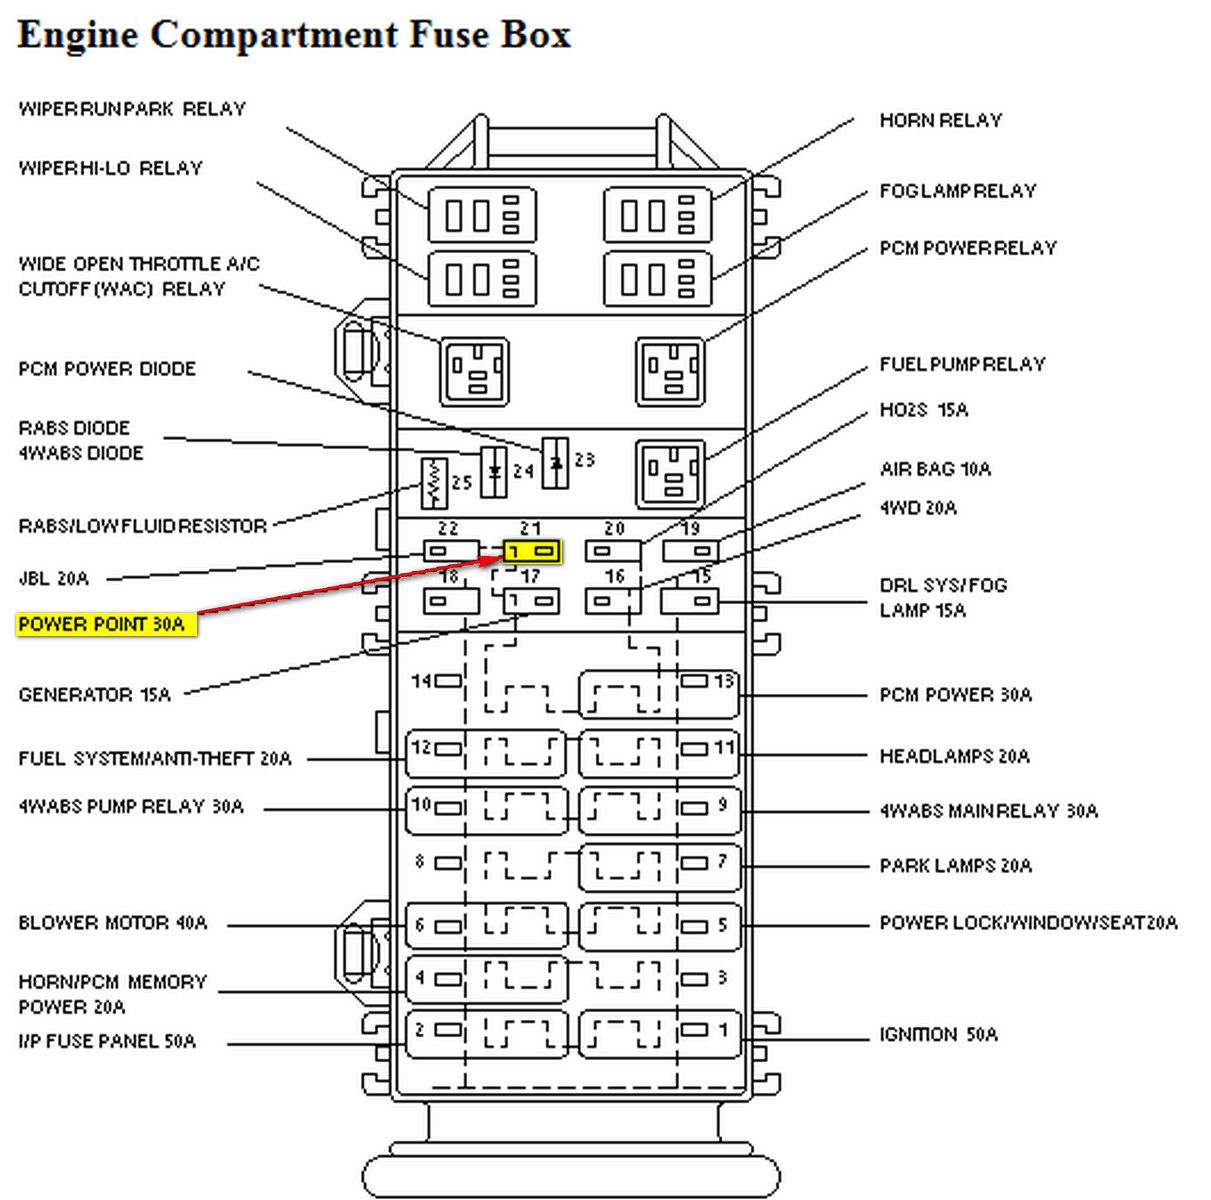 hight resolution of 1997 ford ranger fuse box diagram truck part diagrams ford ranger 1997 ford ranger fuse panel diagram 1997 ford explorer fuse diagram air conditioner